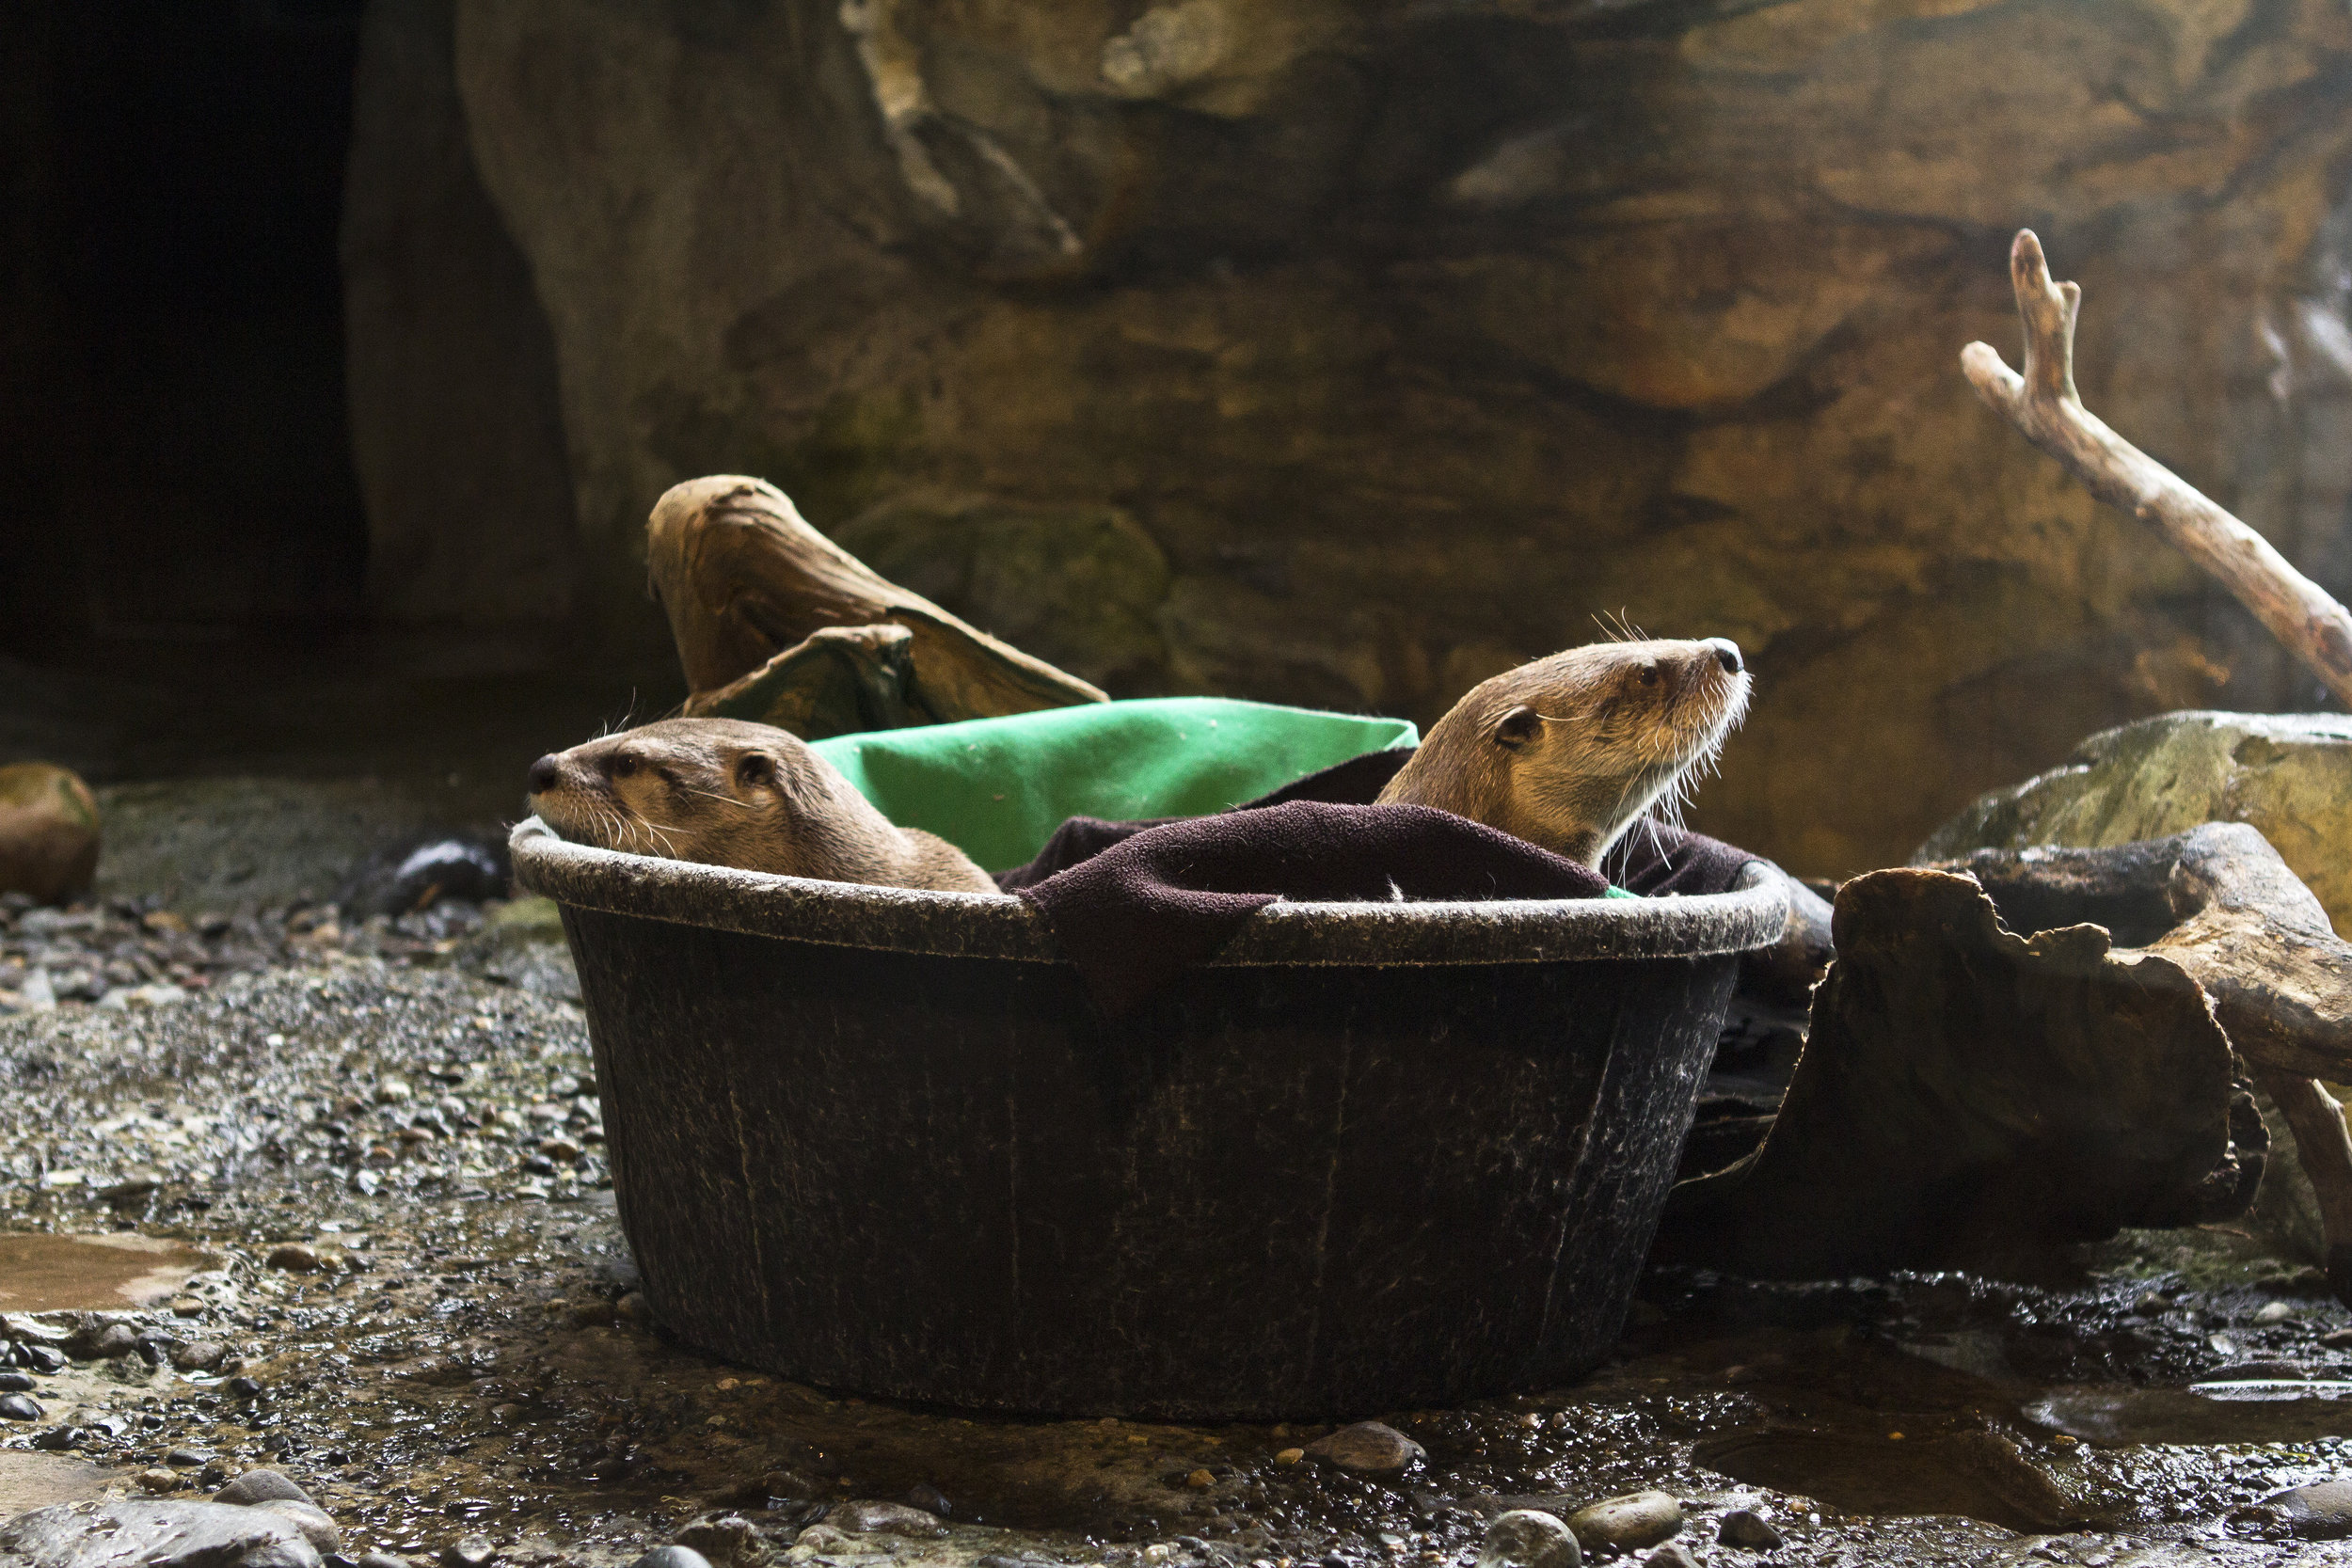 Otters Warm Up in a Bucket Filled with Fleece Blankets